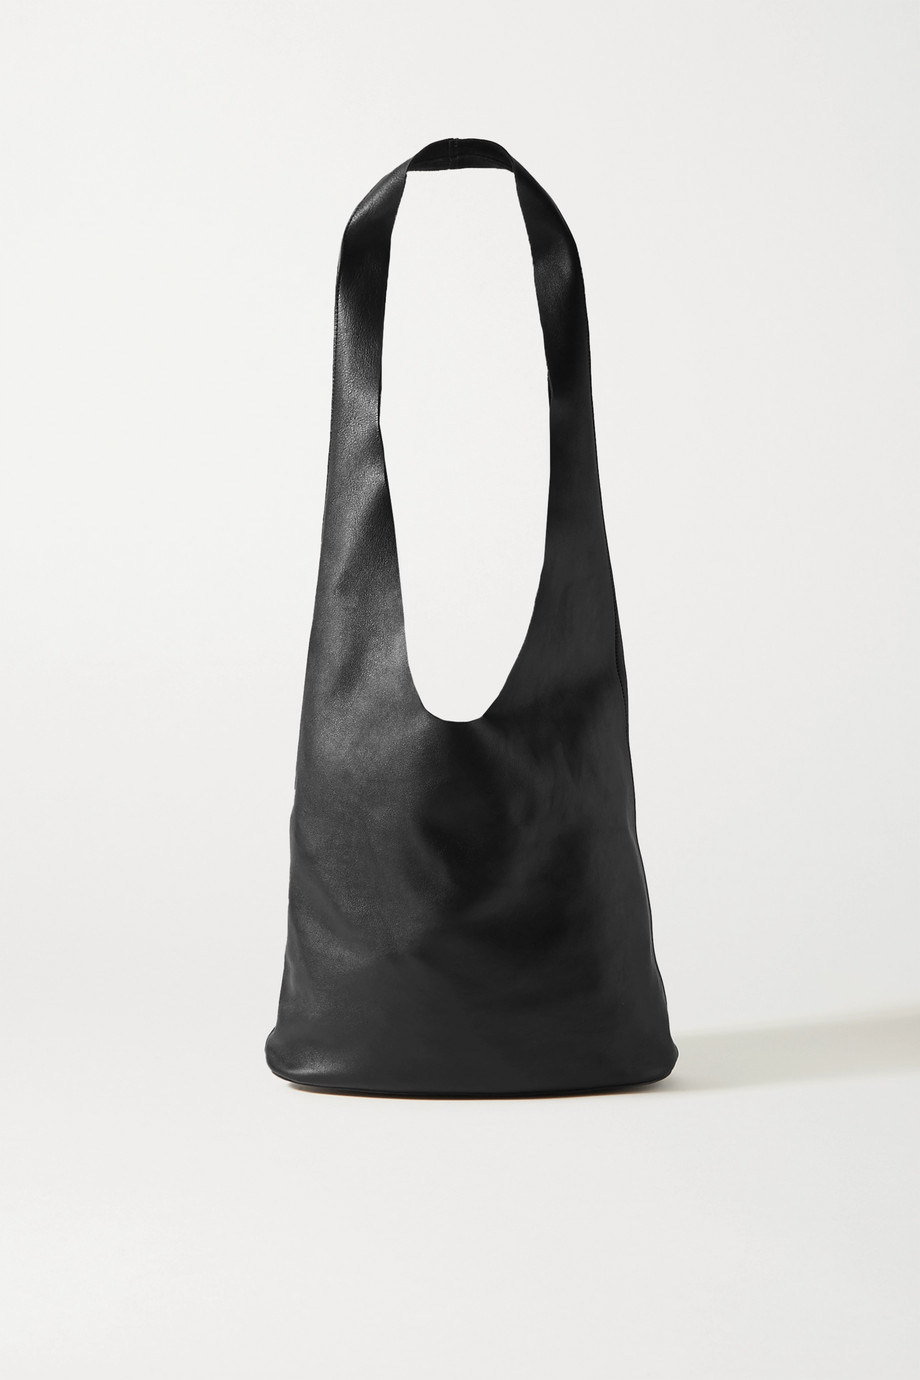 The Row Bucket Hobo leather shoulder bag